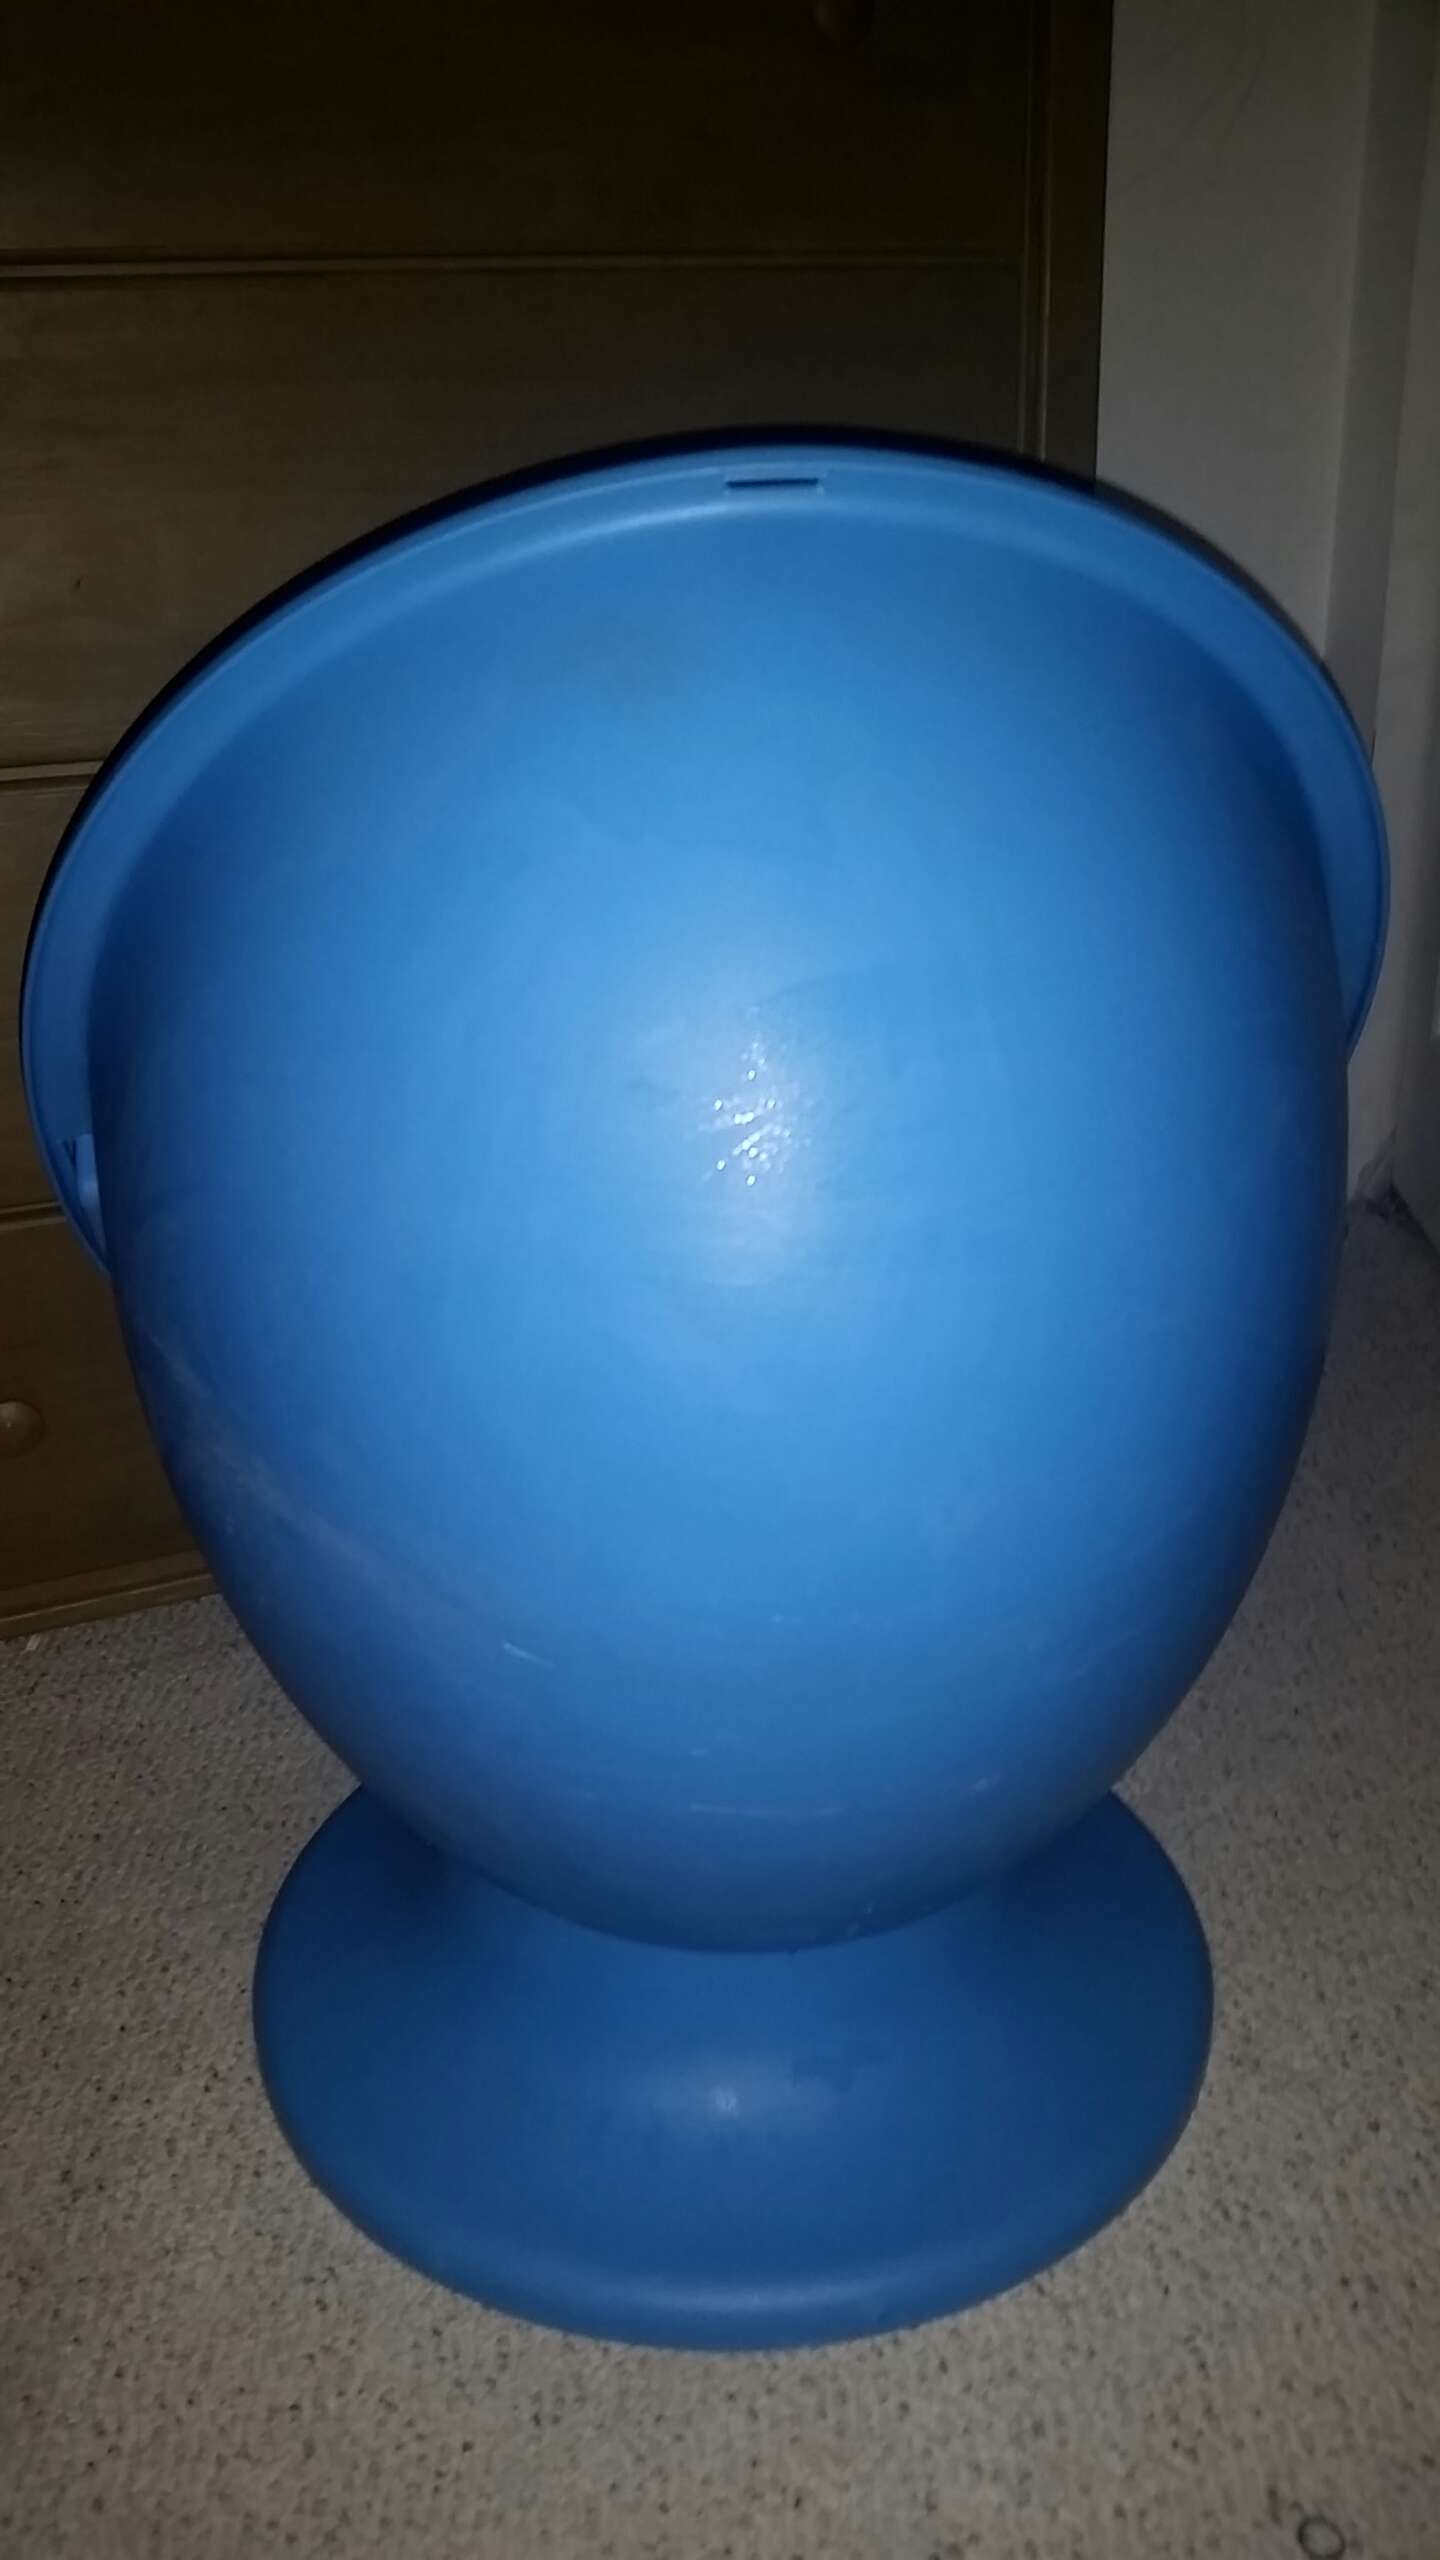 Bubble chairs for under 100 dollars - First Generation Ikea Lomsk Egg Chair Kids